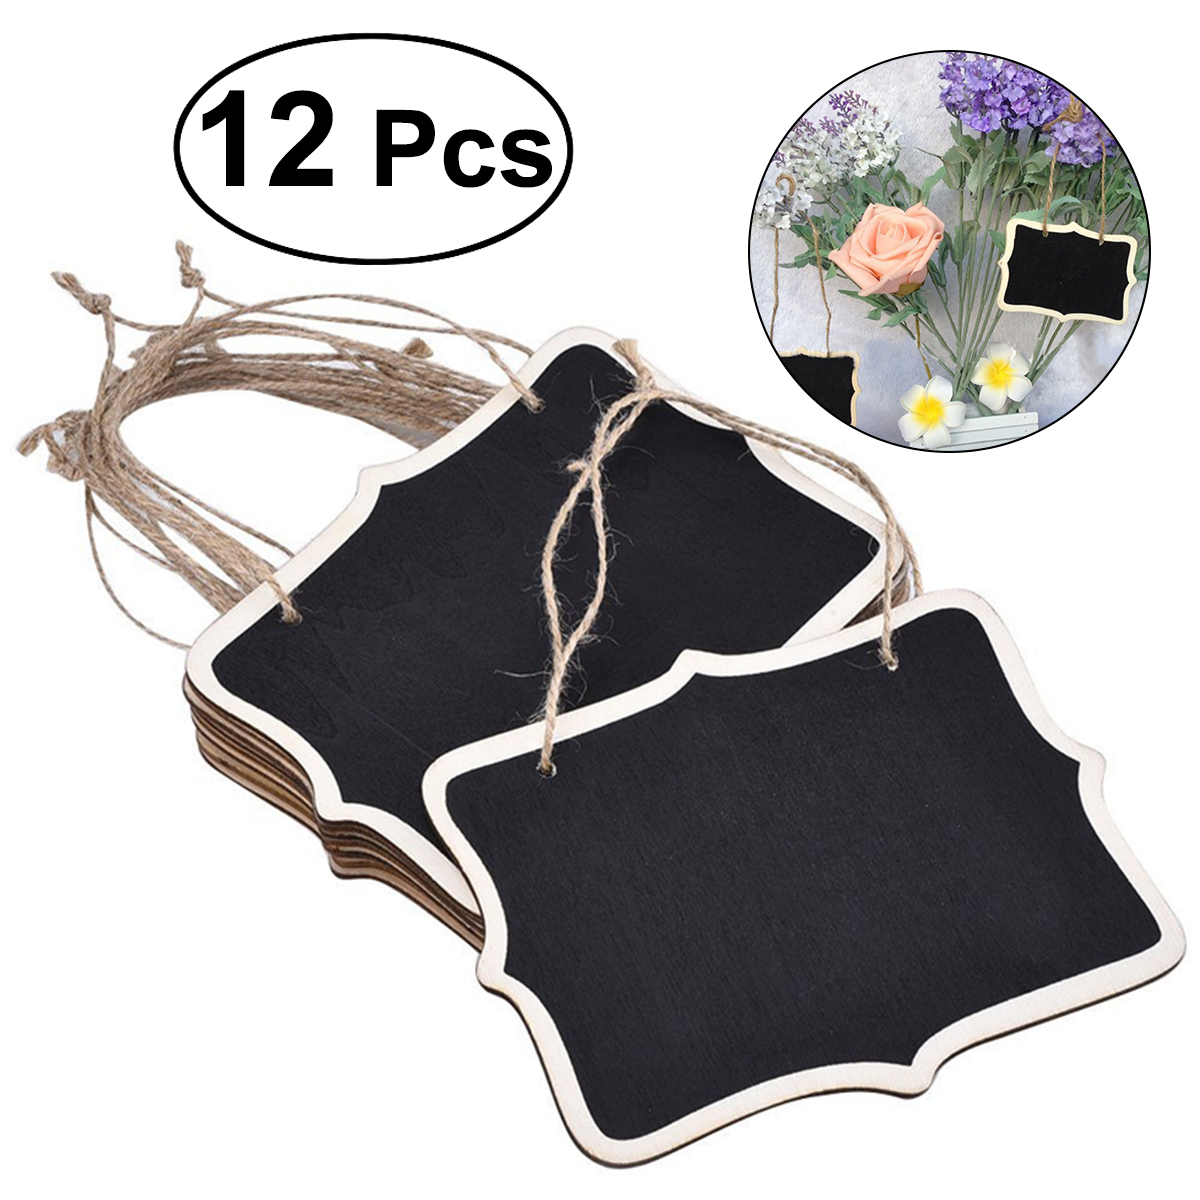 Obedient 12pcs Mini Chalkboards Rectangle Blackboard Tags Hanging Message Board Signs For Weddings Kids Crafts Wood Diy Crafts